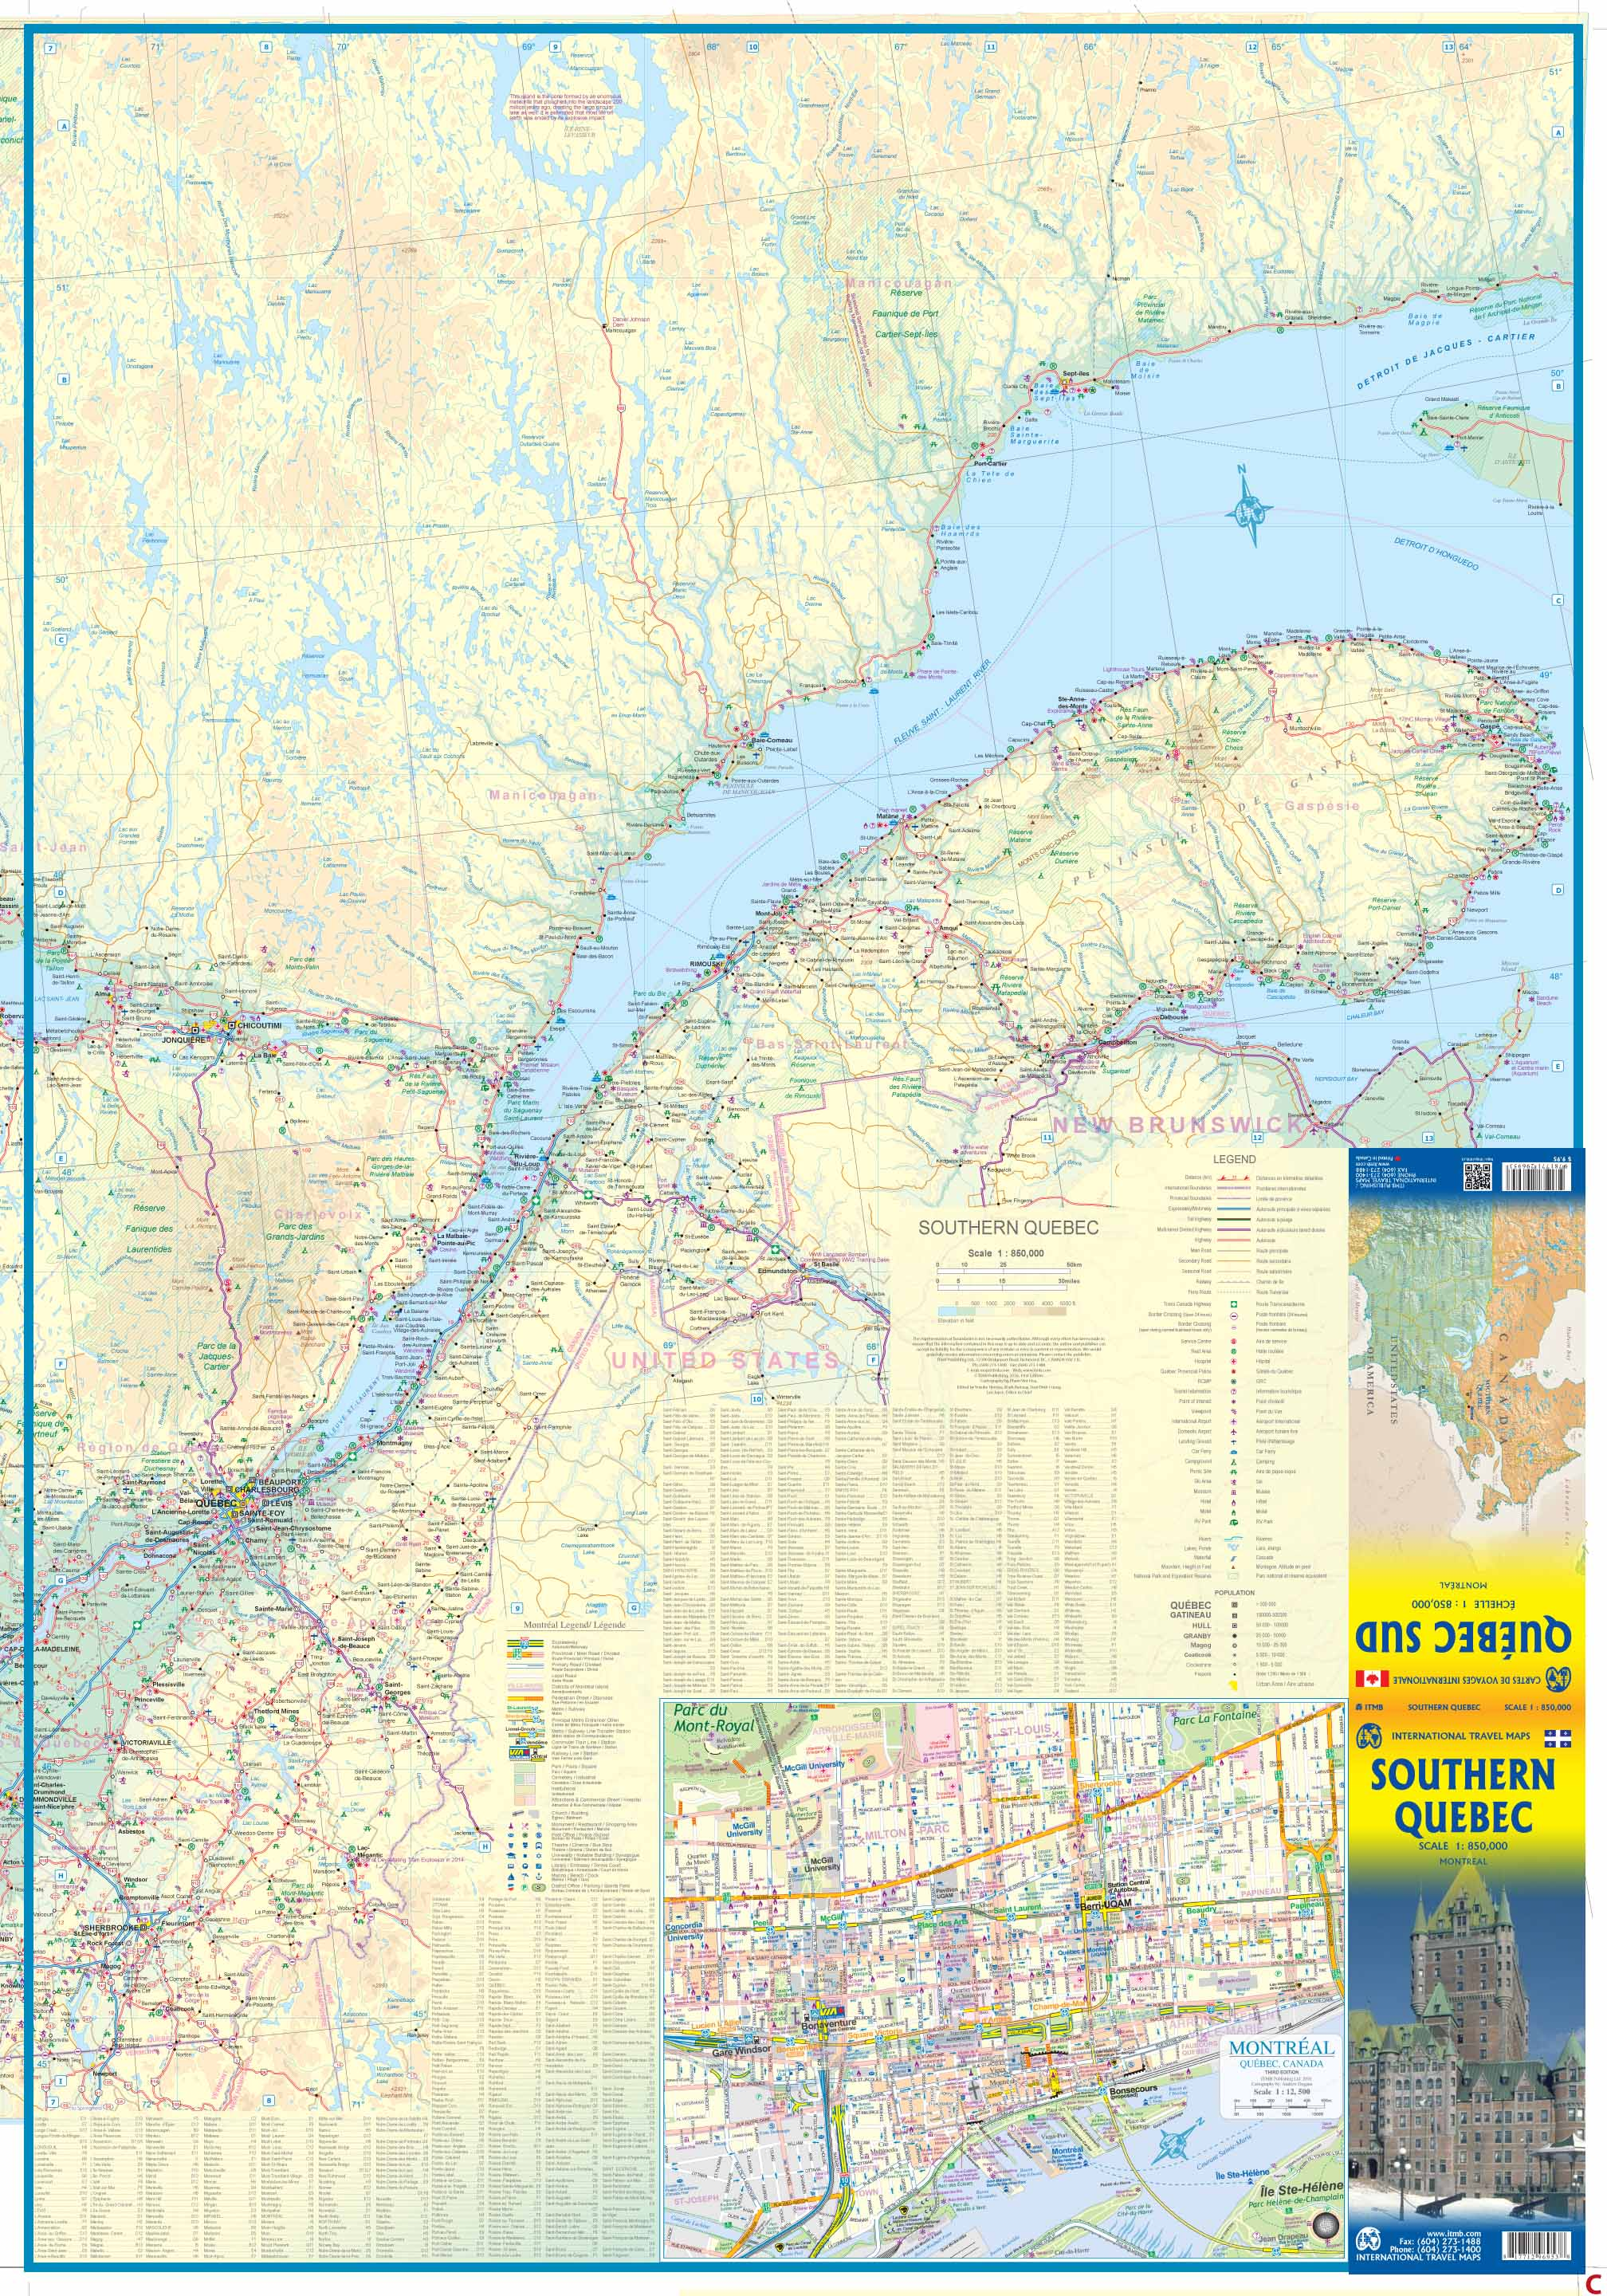 Southern Quebec road map at 1:850 000 - ITMB Publishing - Maptogo on